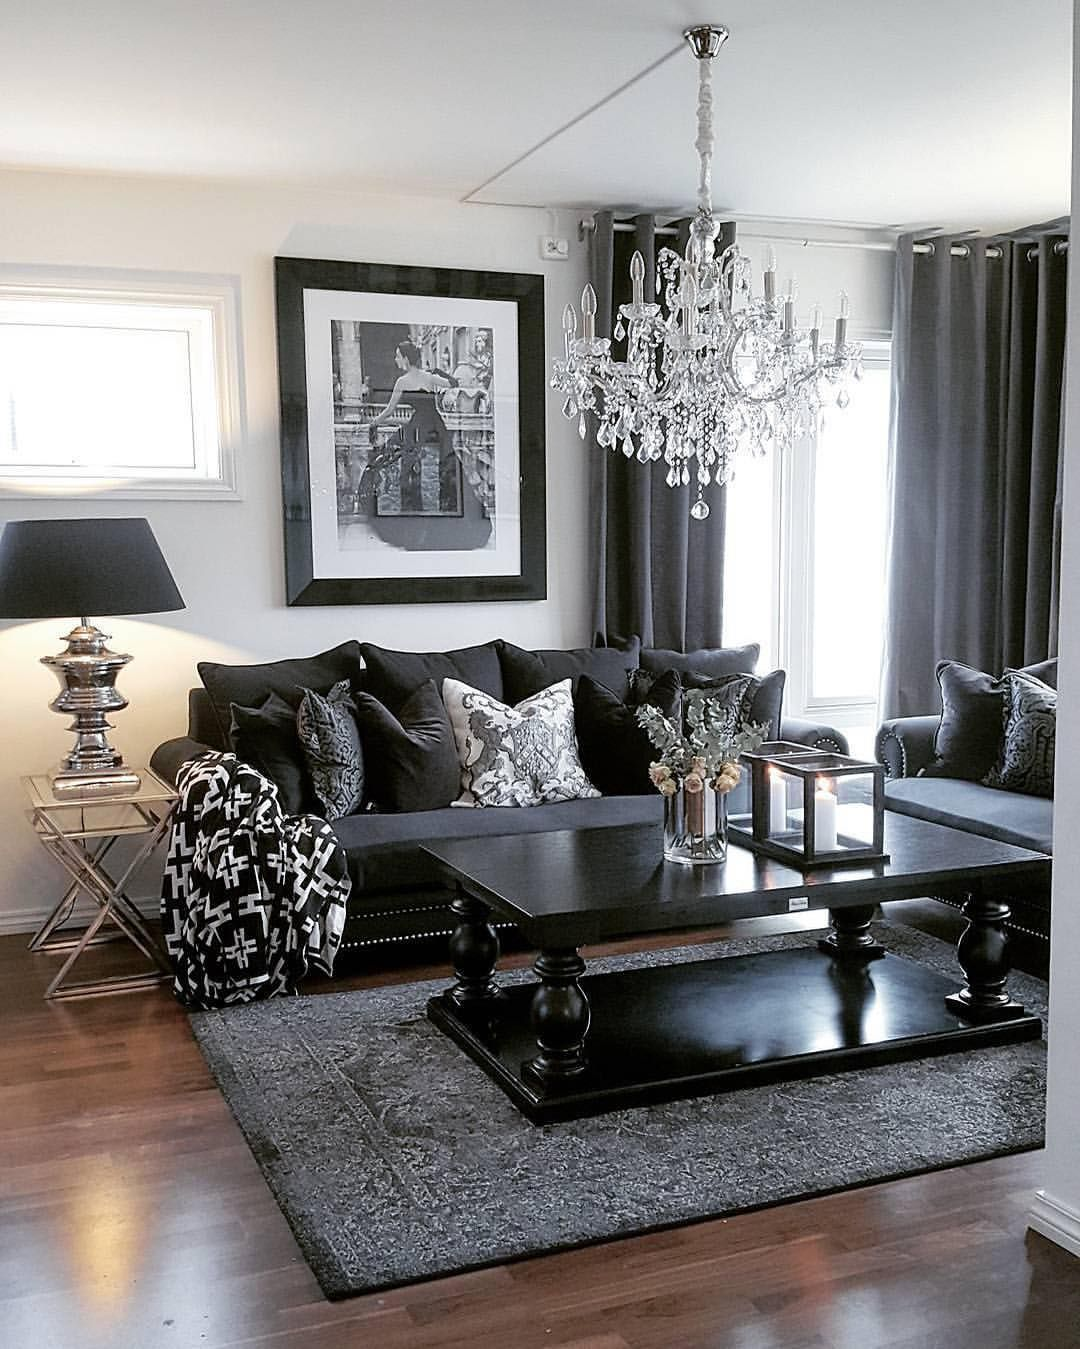 Decoraciones Casas Pequeñas Like What You See Follow For More Mya Martinez